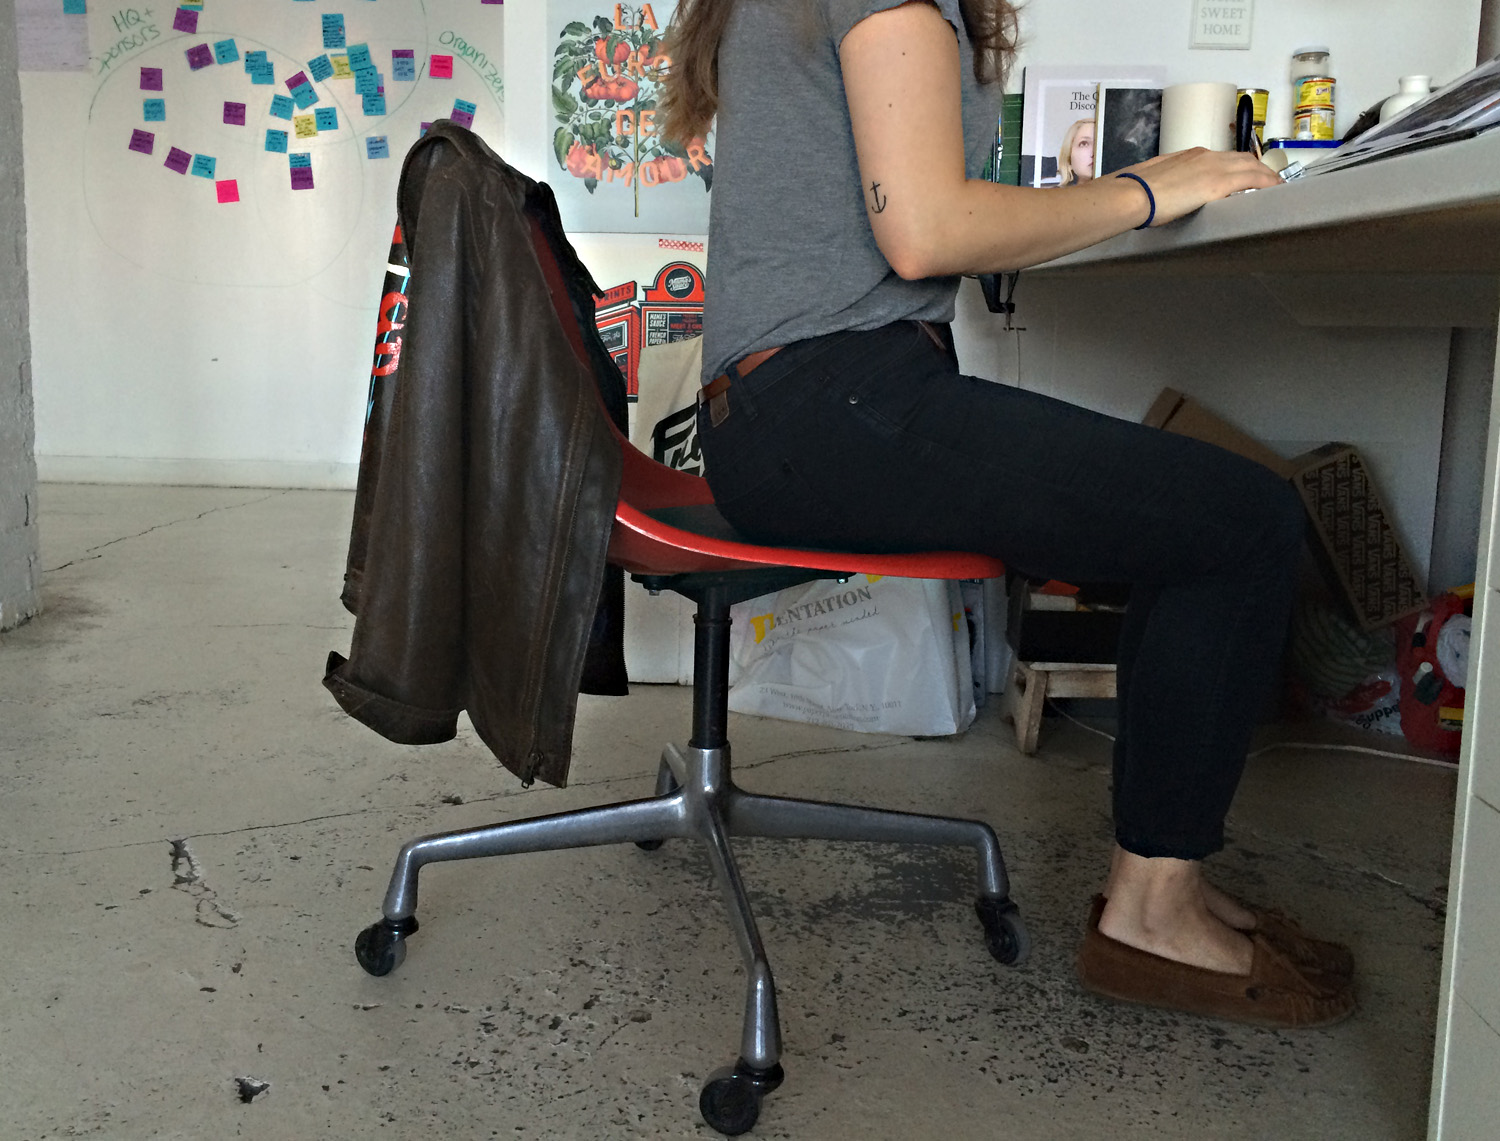 Sitting Pretty: The Ergonomics And Economics Of Office Chairs